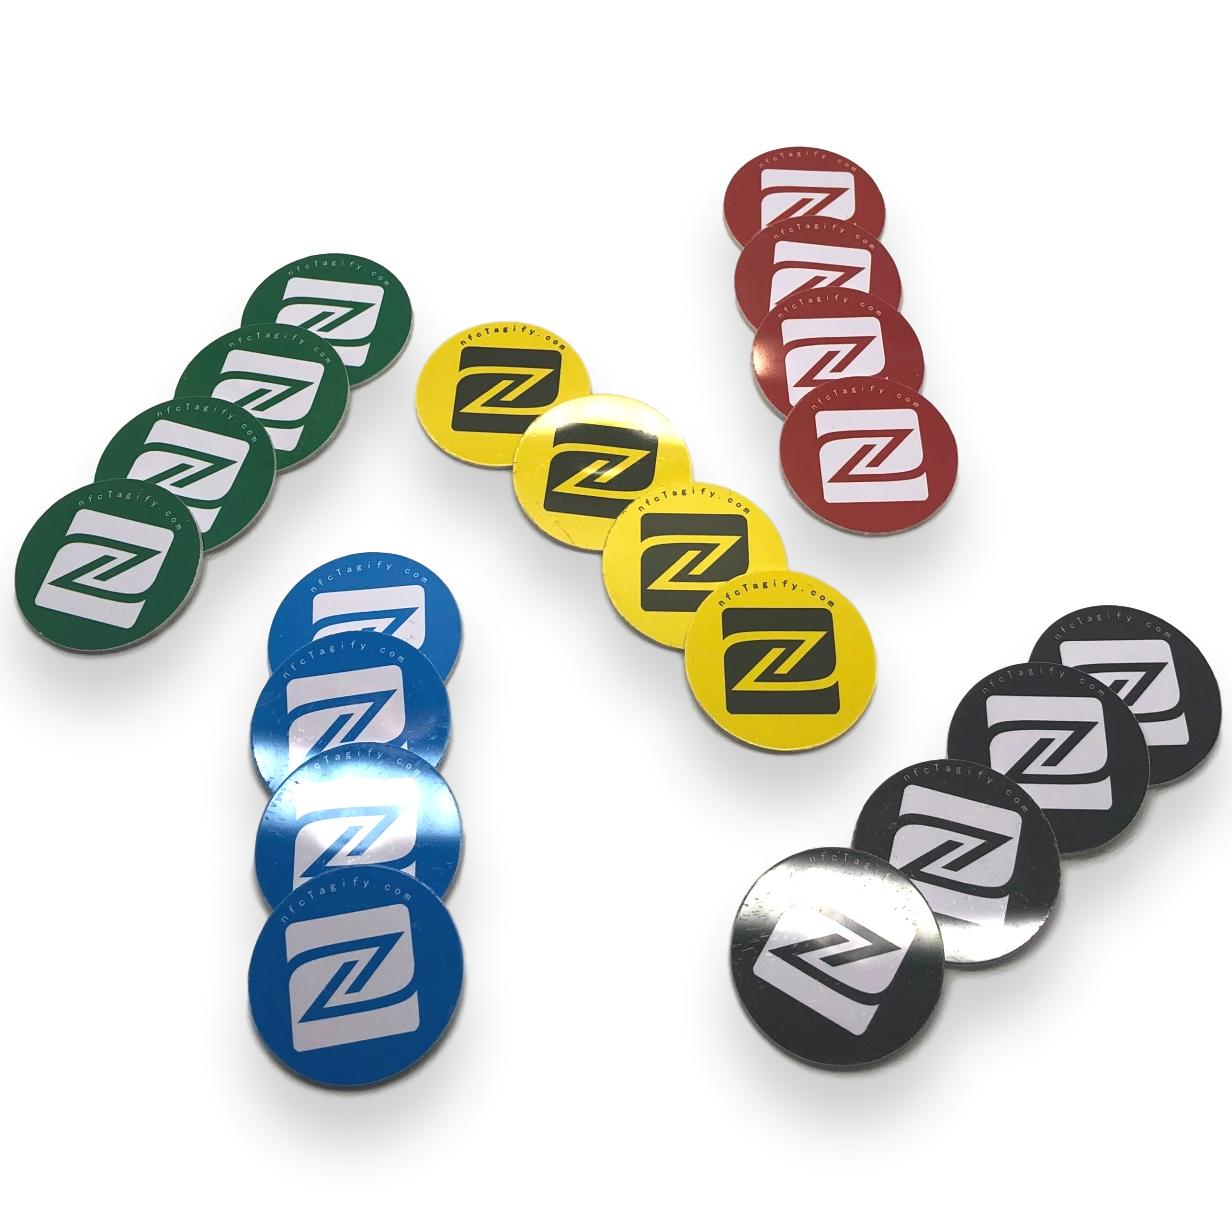 Nfc Tags Nfc Tags Ntag215 Elegant Design Mixed Colours Suitable For Home And Office Appliances 25 Mm Hard Pvc And Strong 3m Glue Same Chip With Tagmo